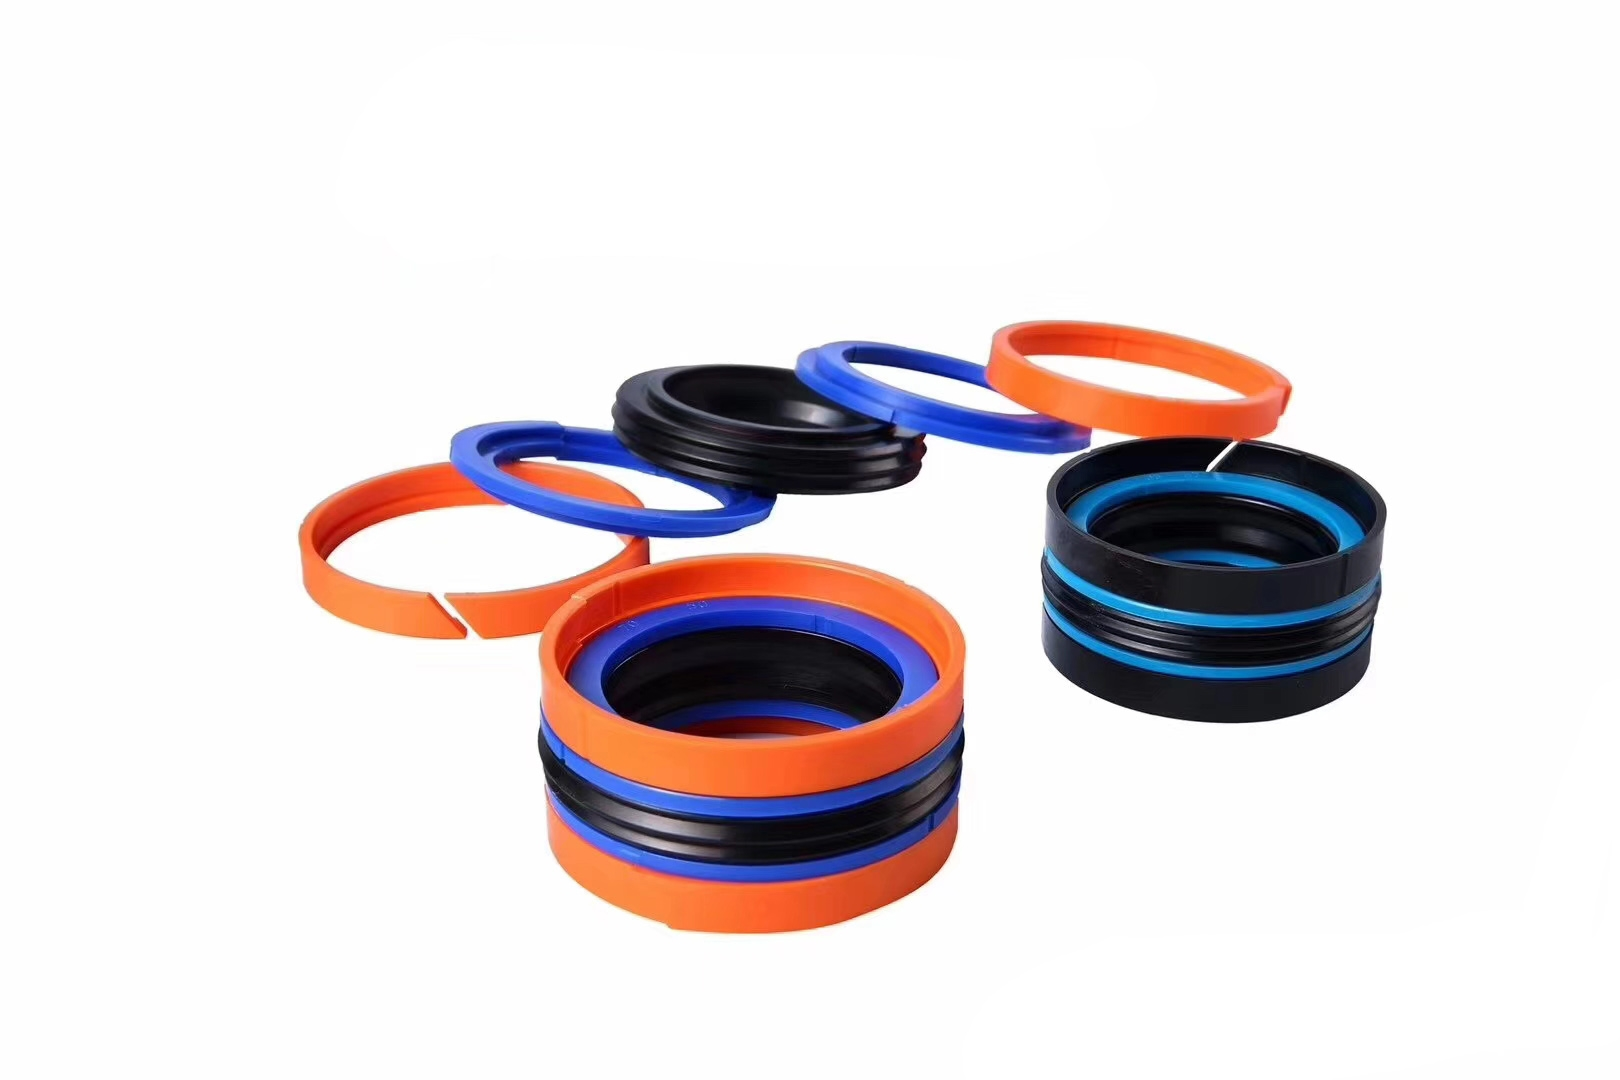 Piston Seals ose Piston Rings